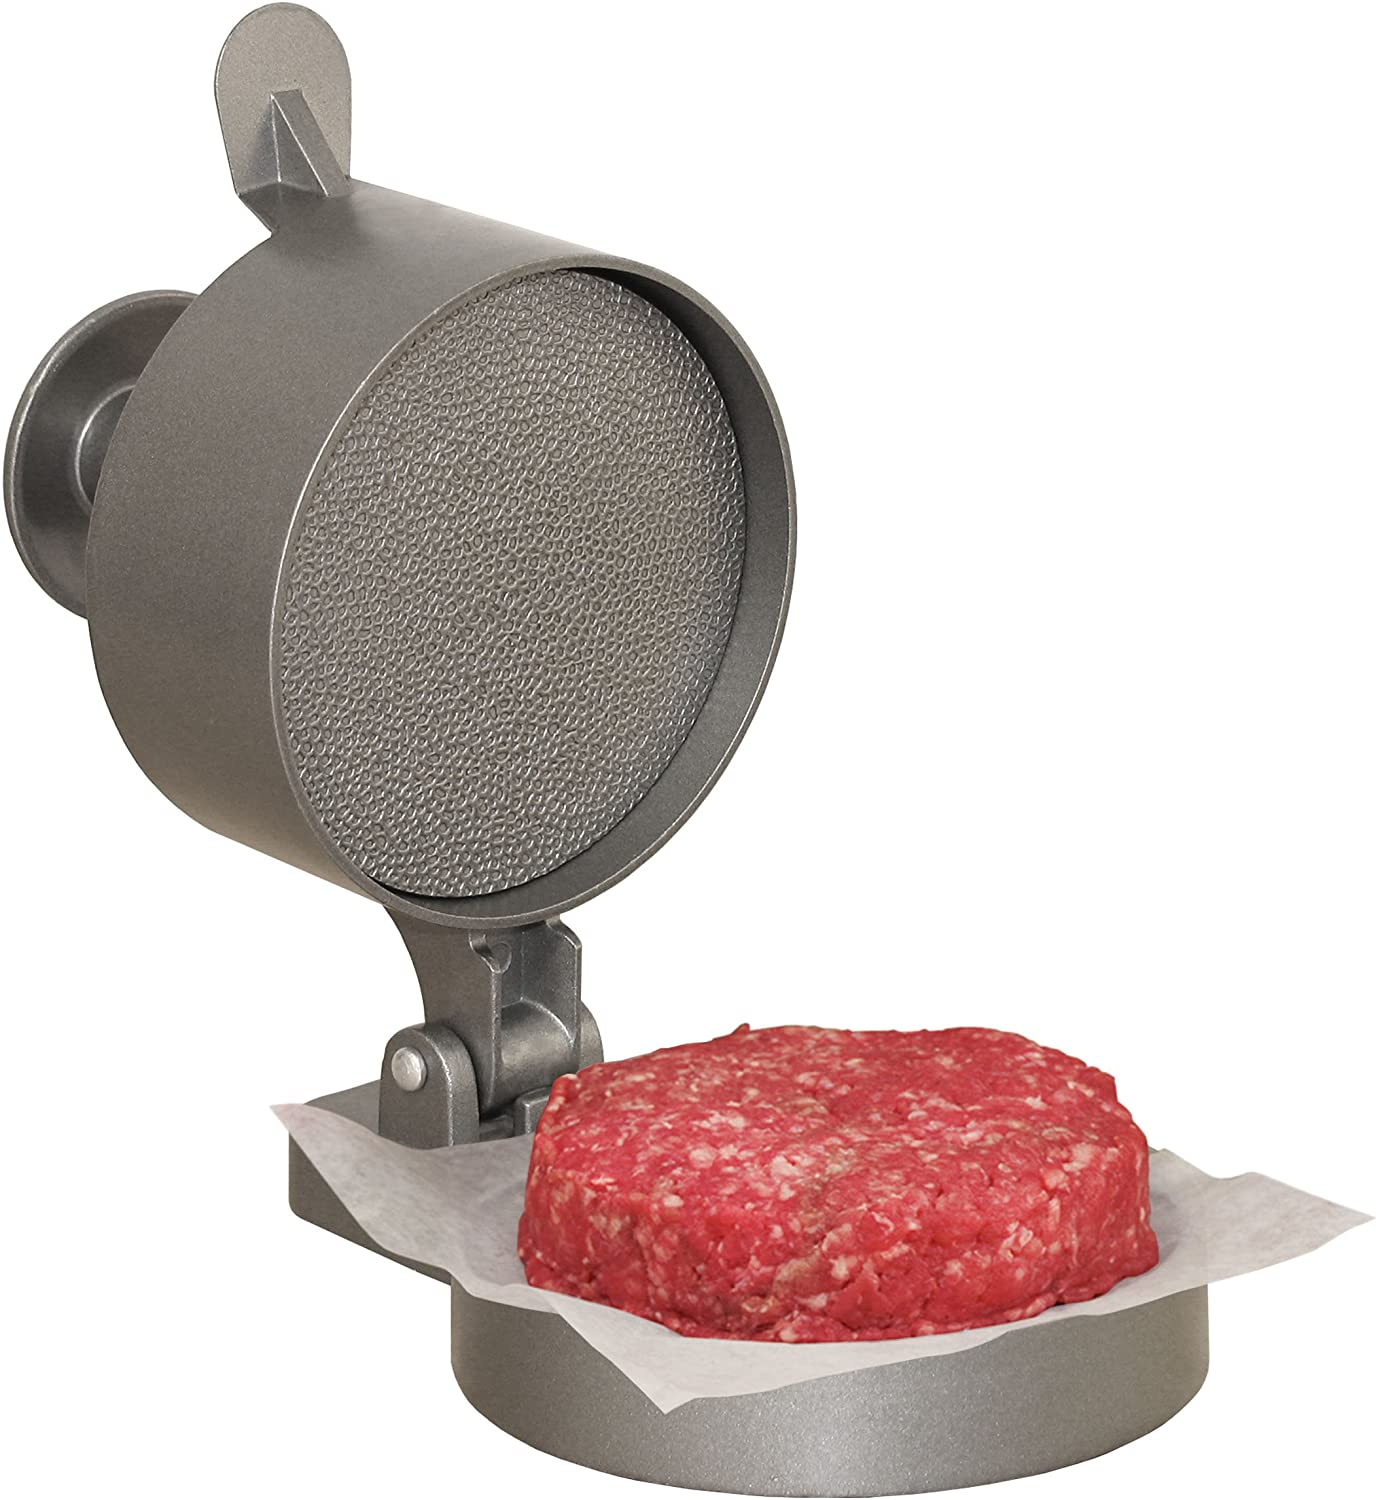 Weston burger express hamburger press with patty ejector